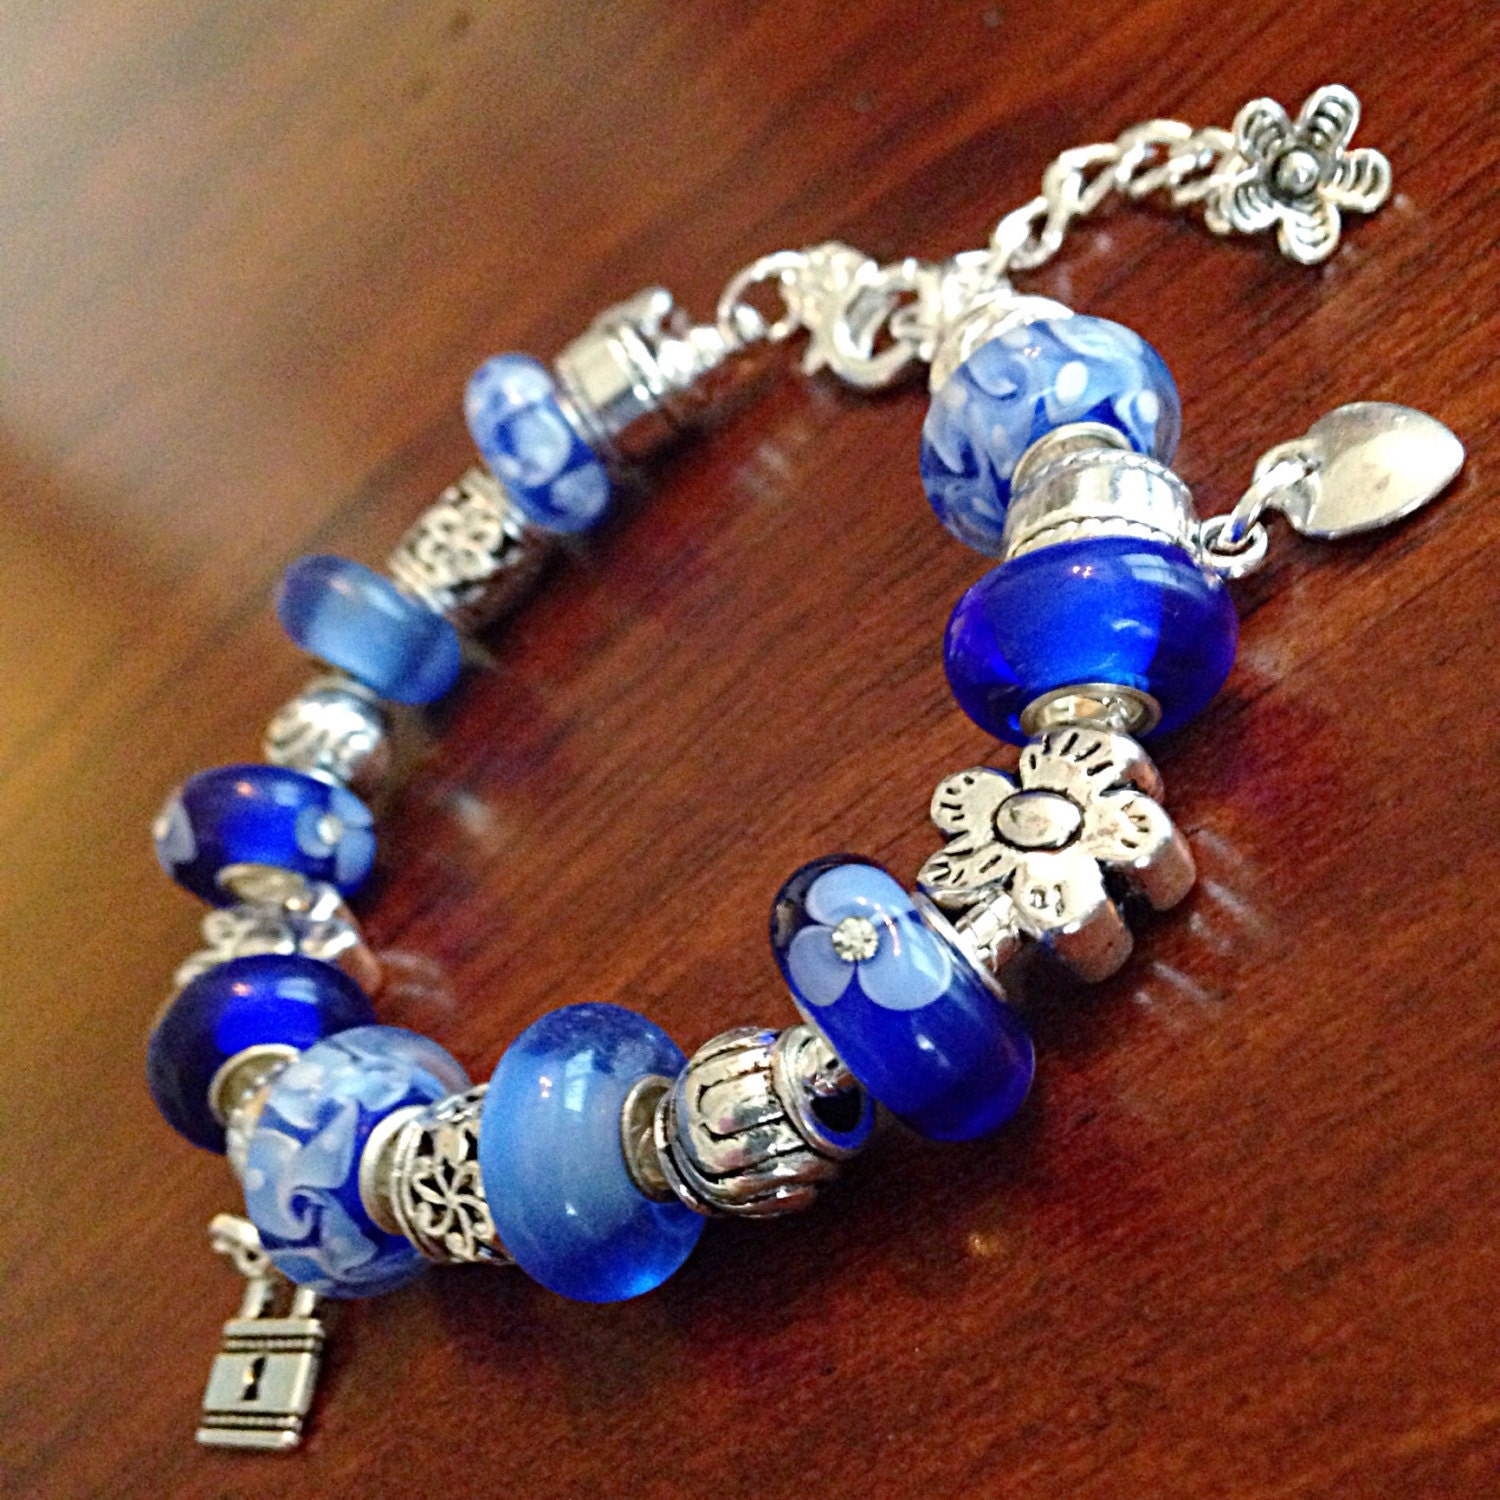 blue addition alopecia awareness pin bracelet recovery colon cancer chronic fatigue